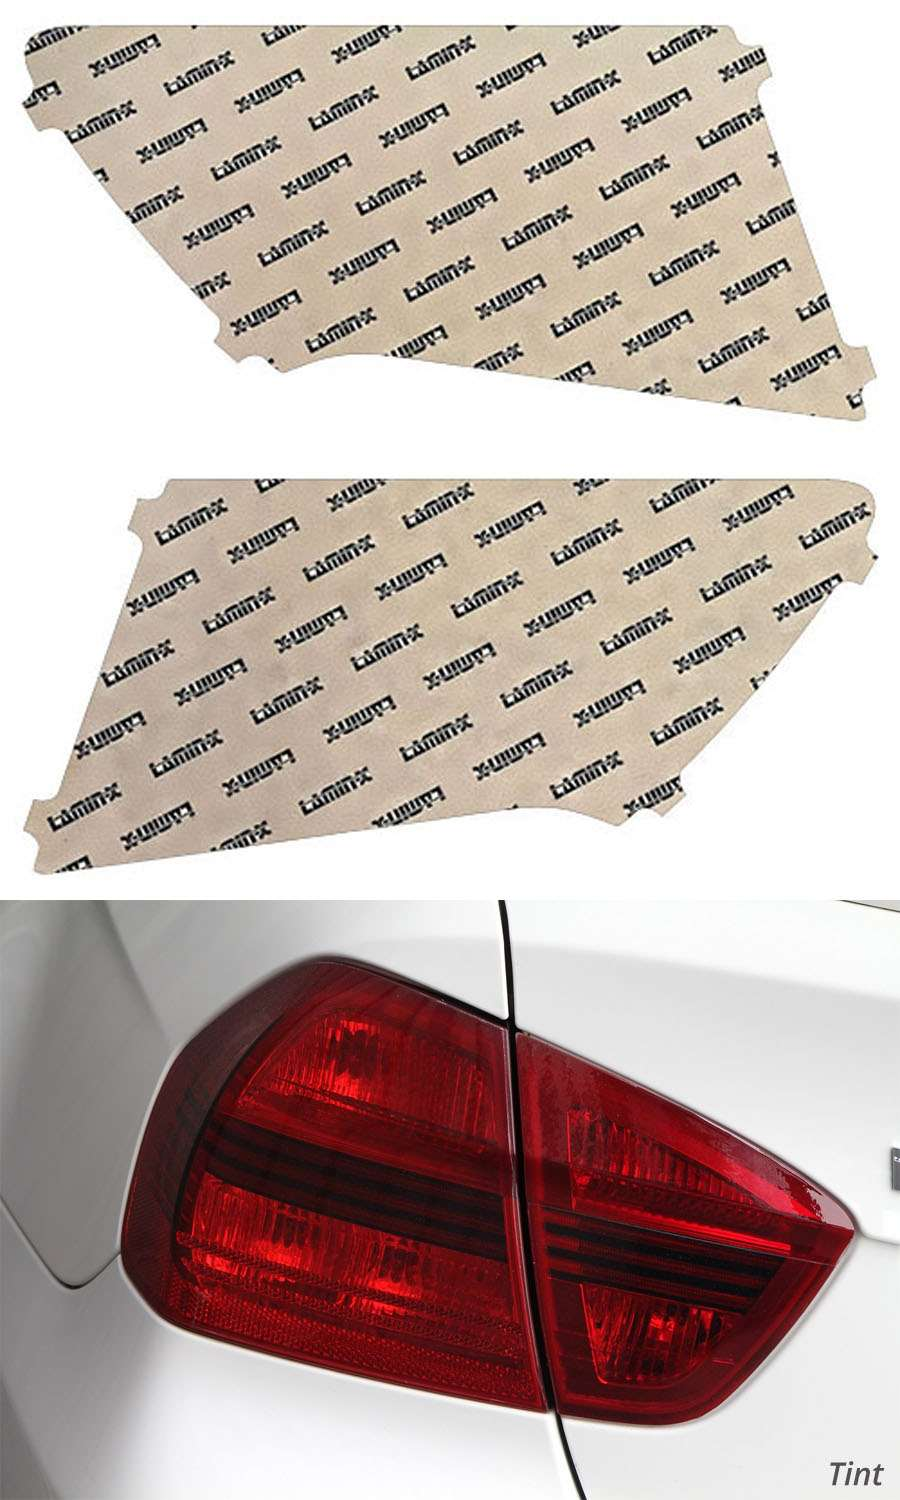 Lamin-X Tail Light Covers - Lamin-X S624